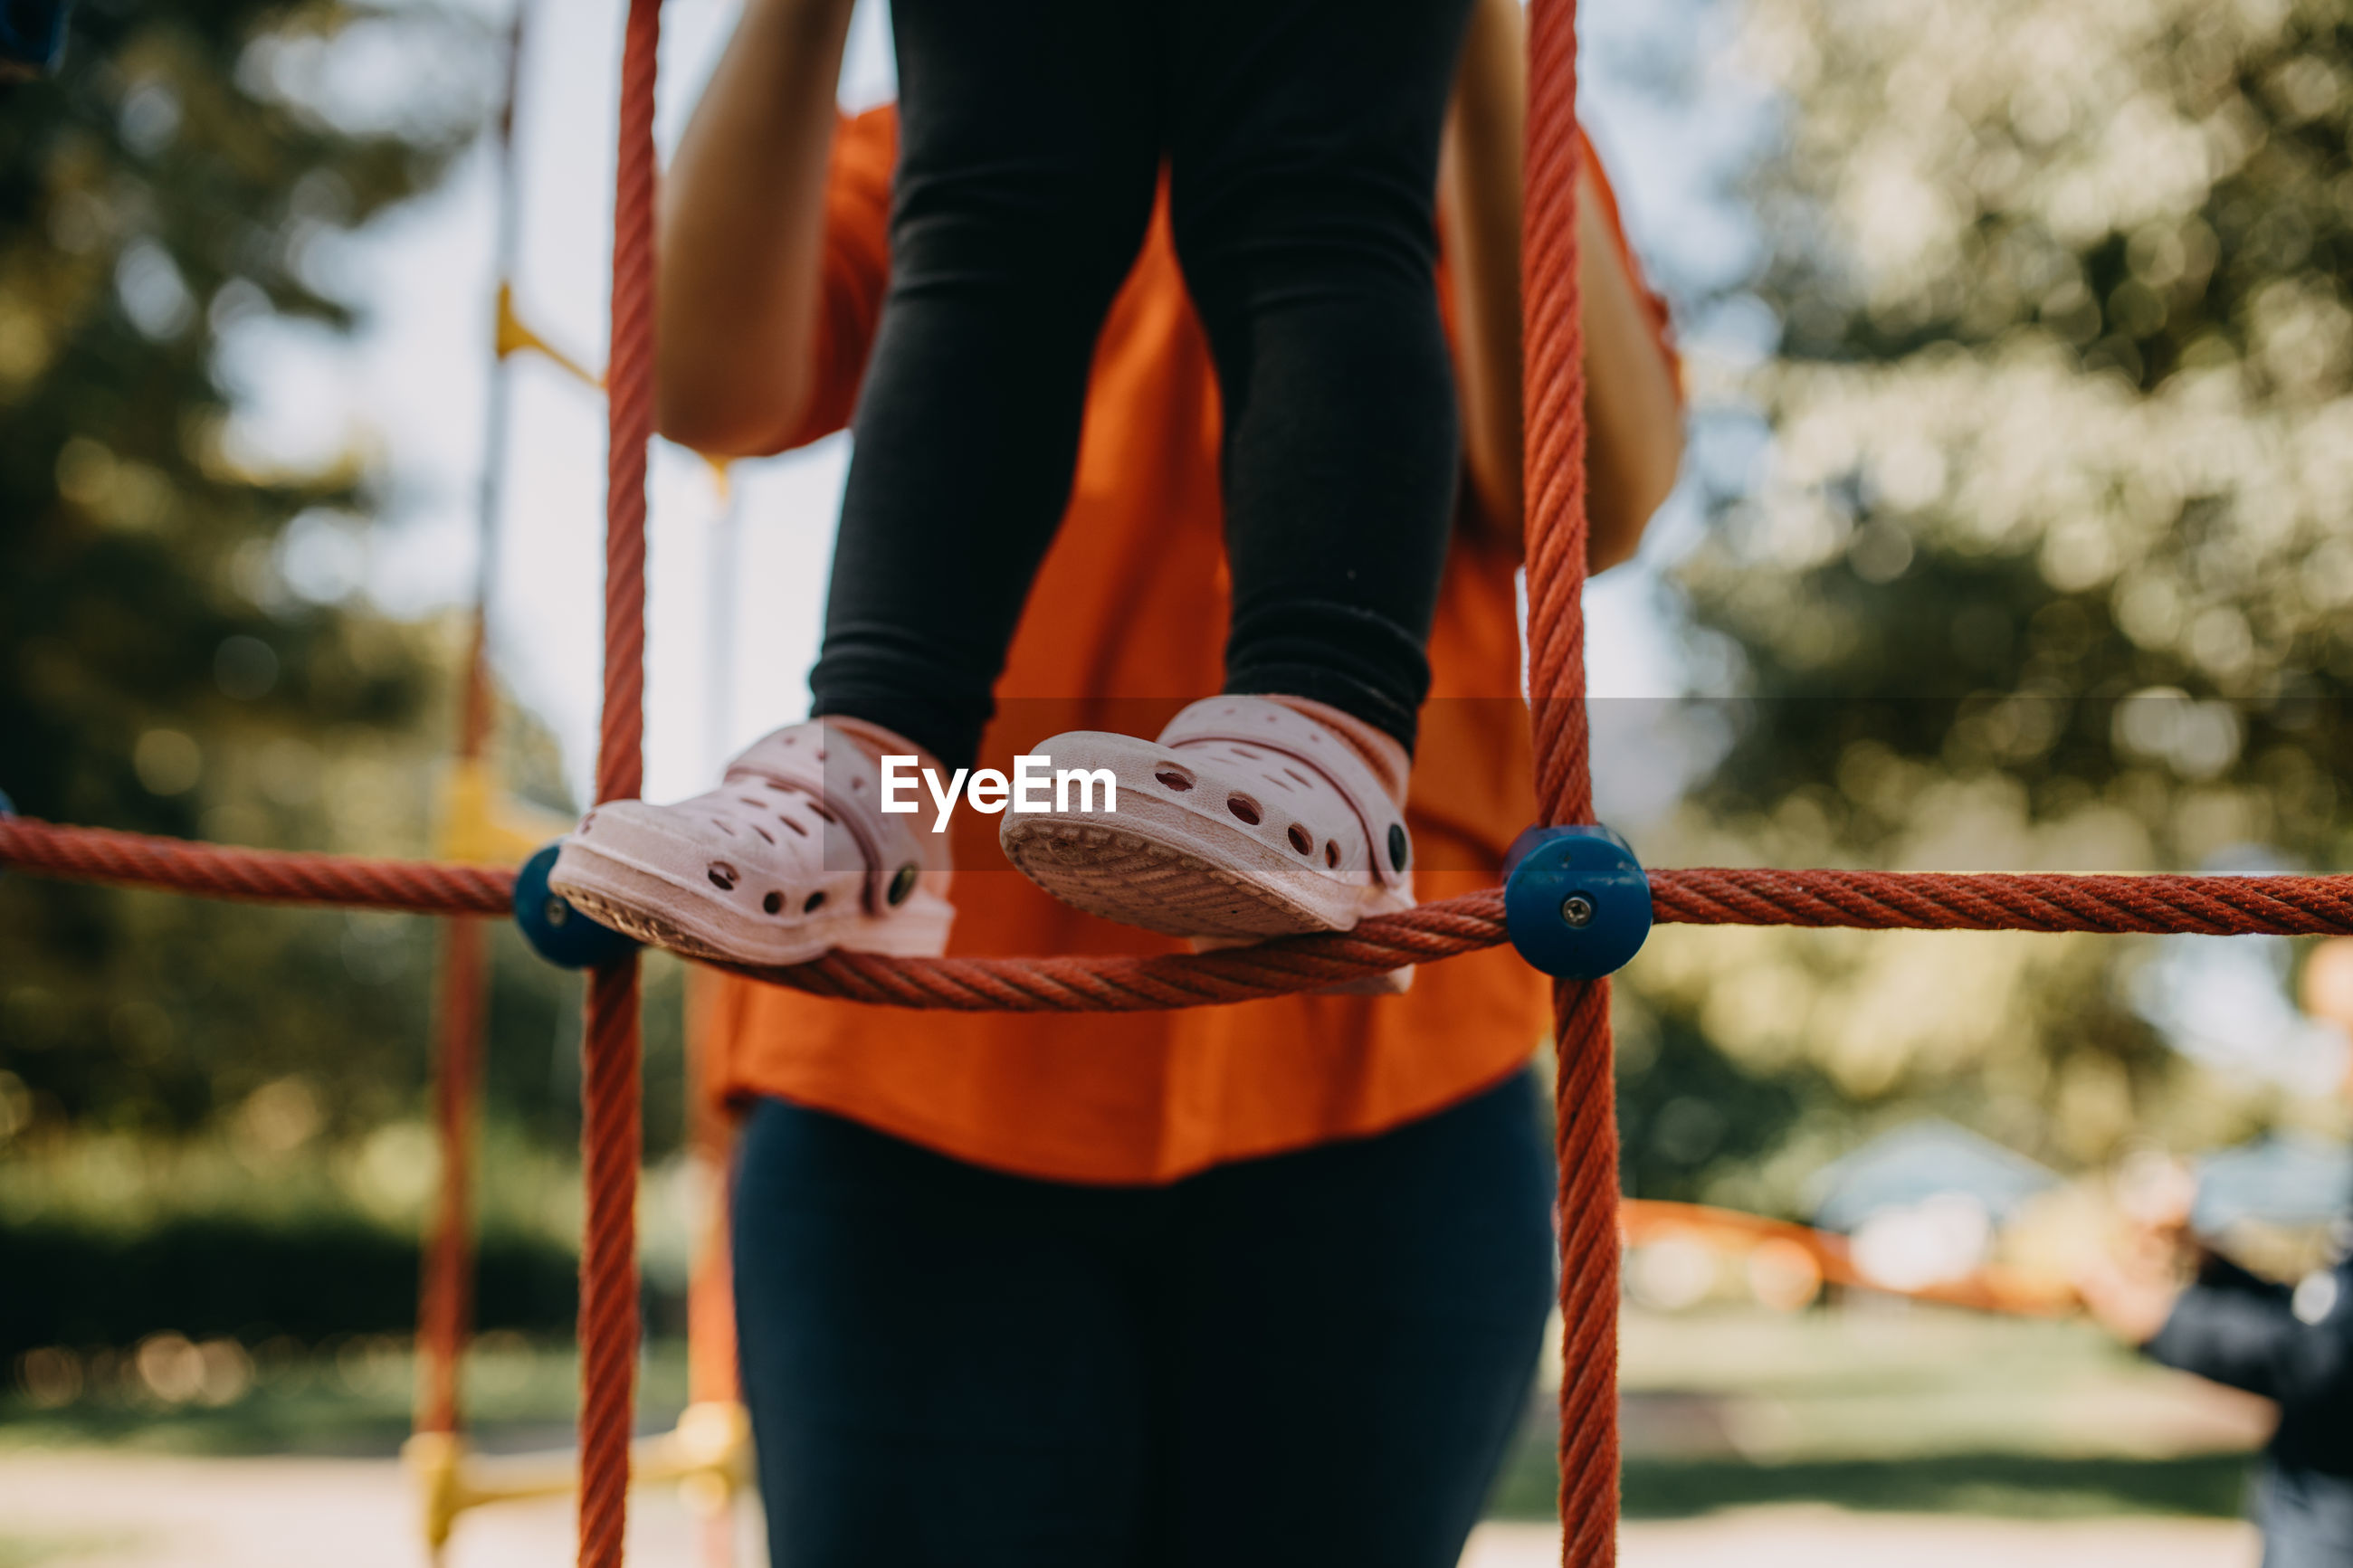 Low section of person standing on rope